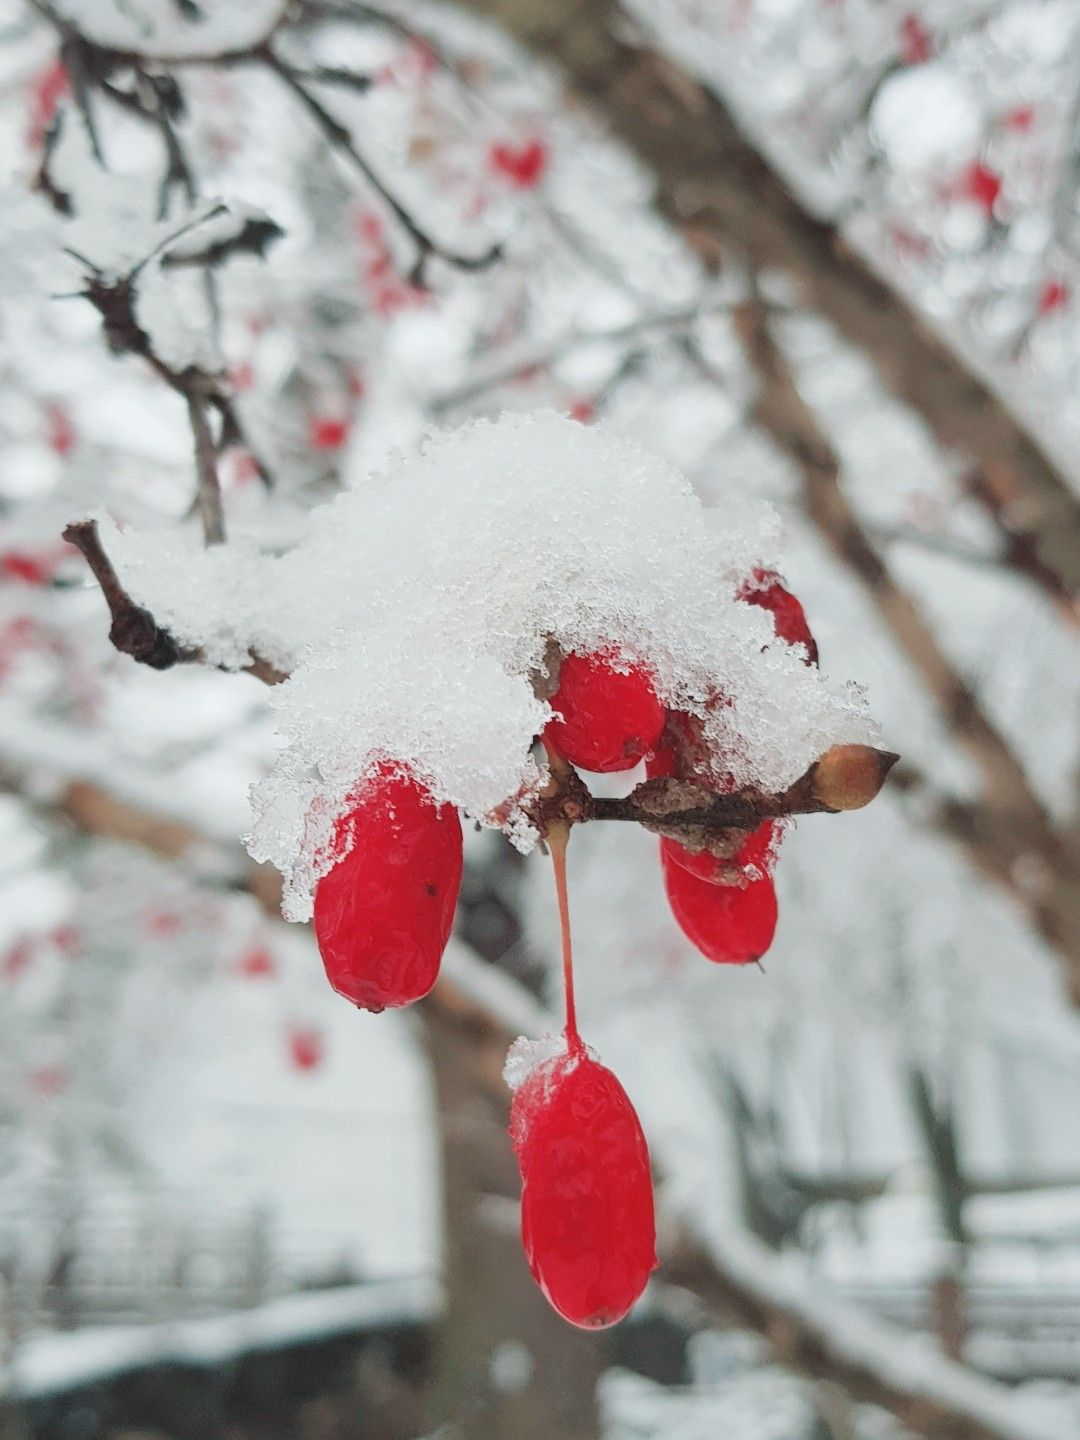 Pop of red #winter #berries #aesthetic Holiday spirit in the nature. First snow in Korea, make a wish darling♡♡♡